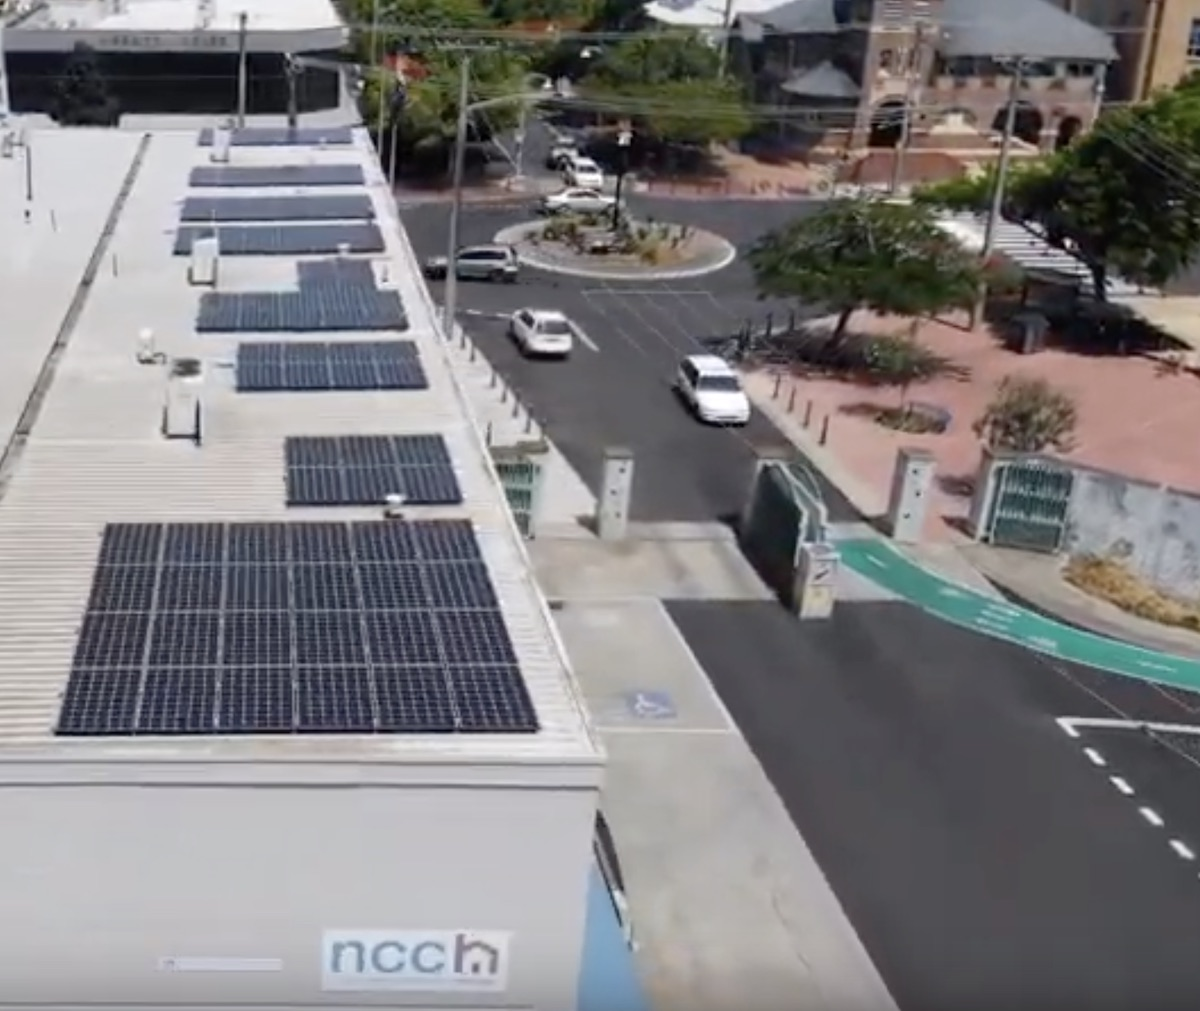 ncch solar roof copy